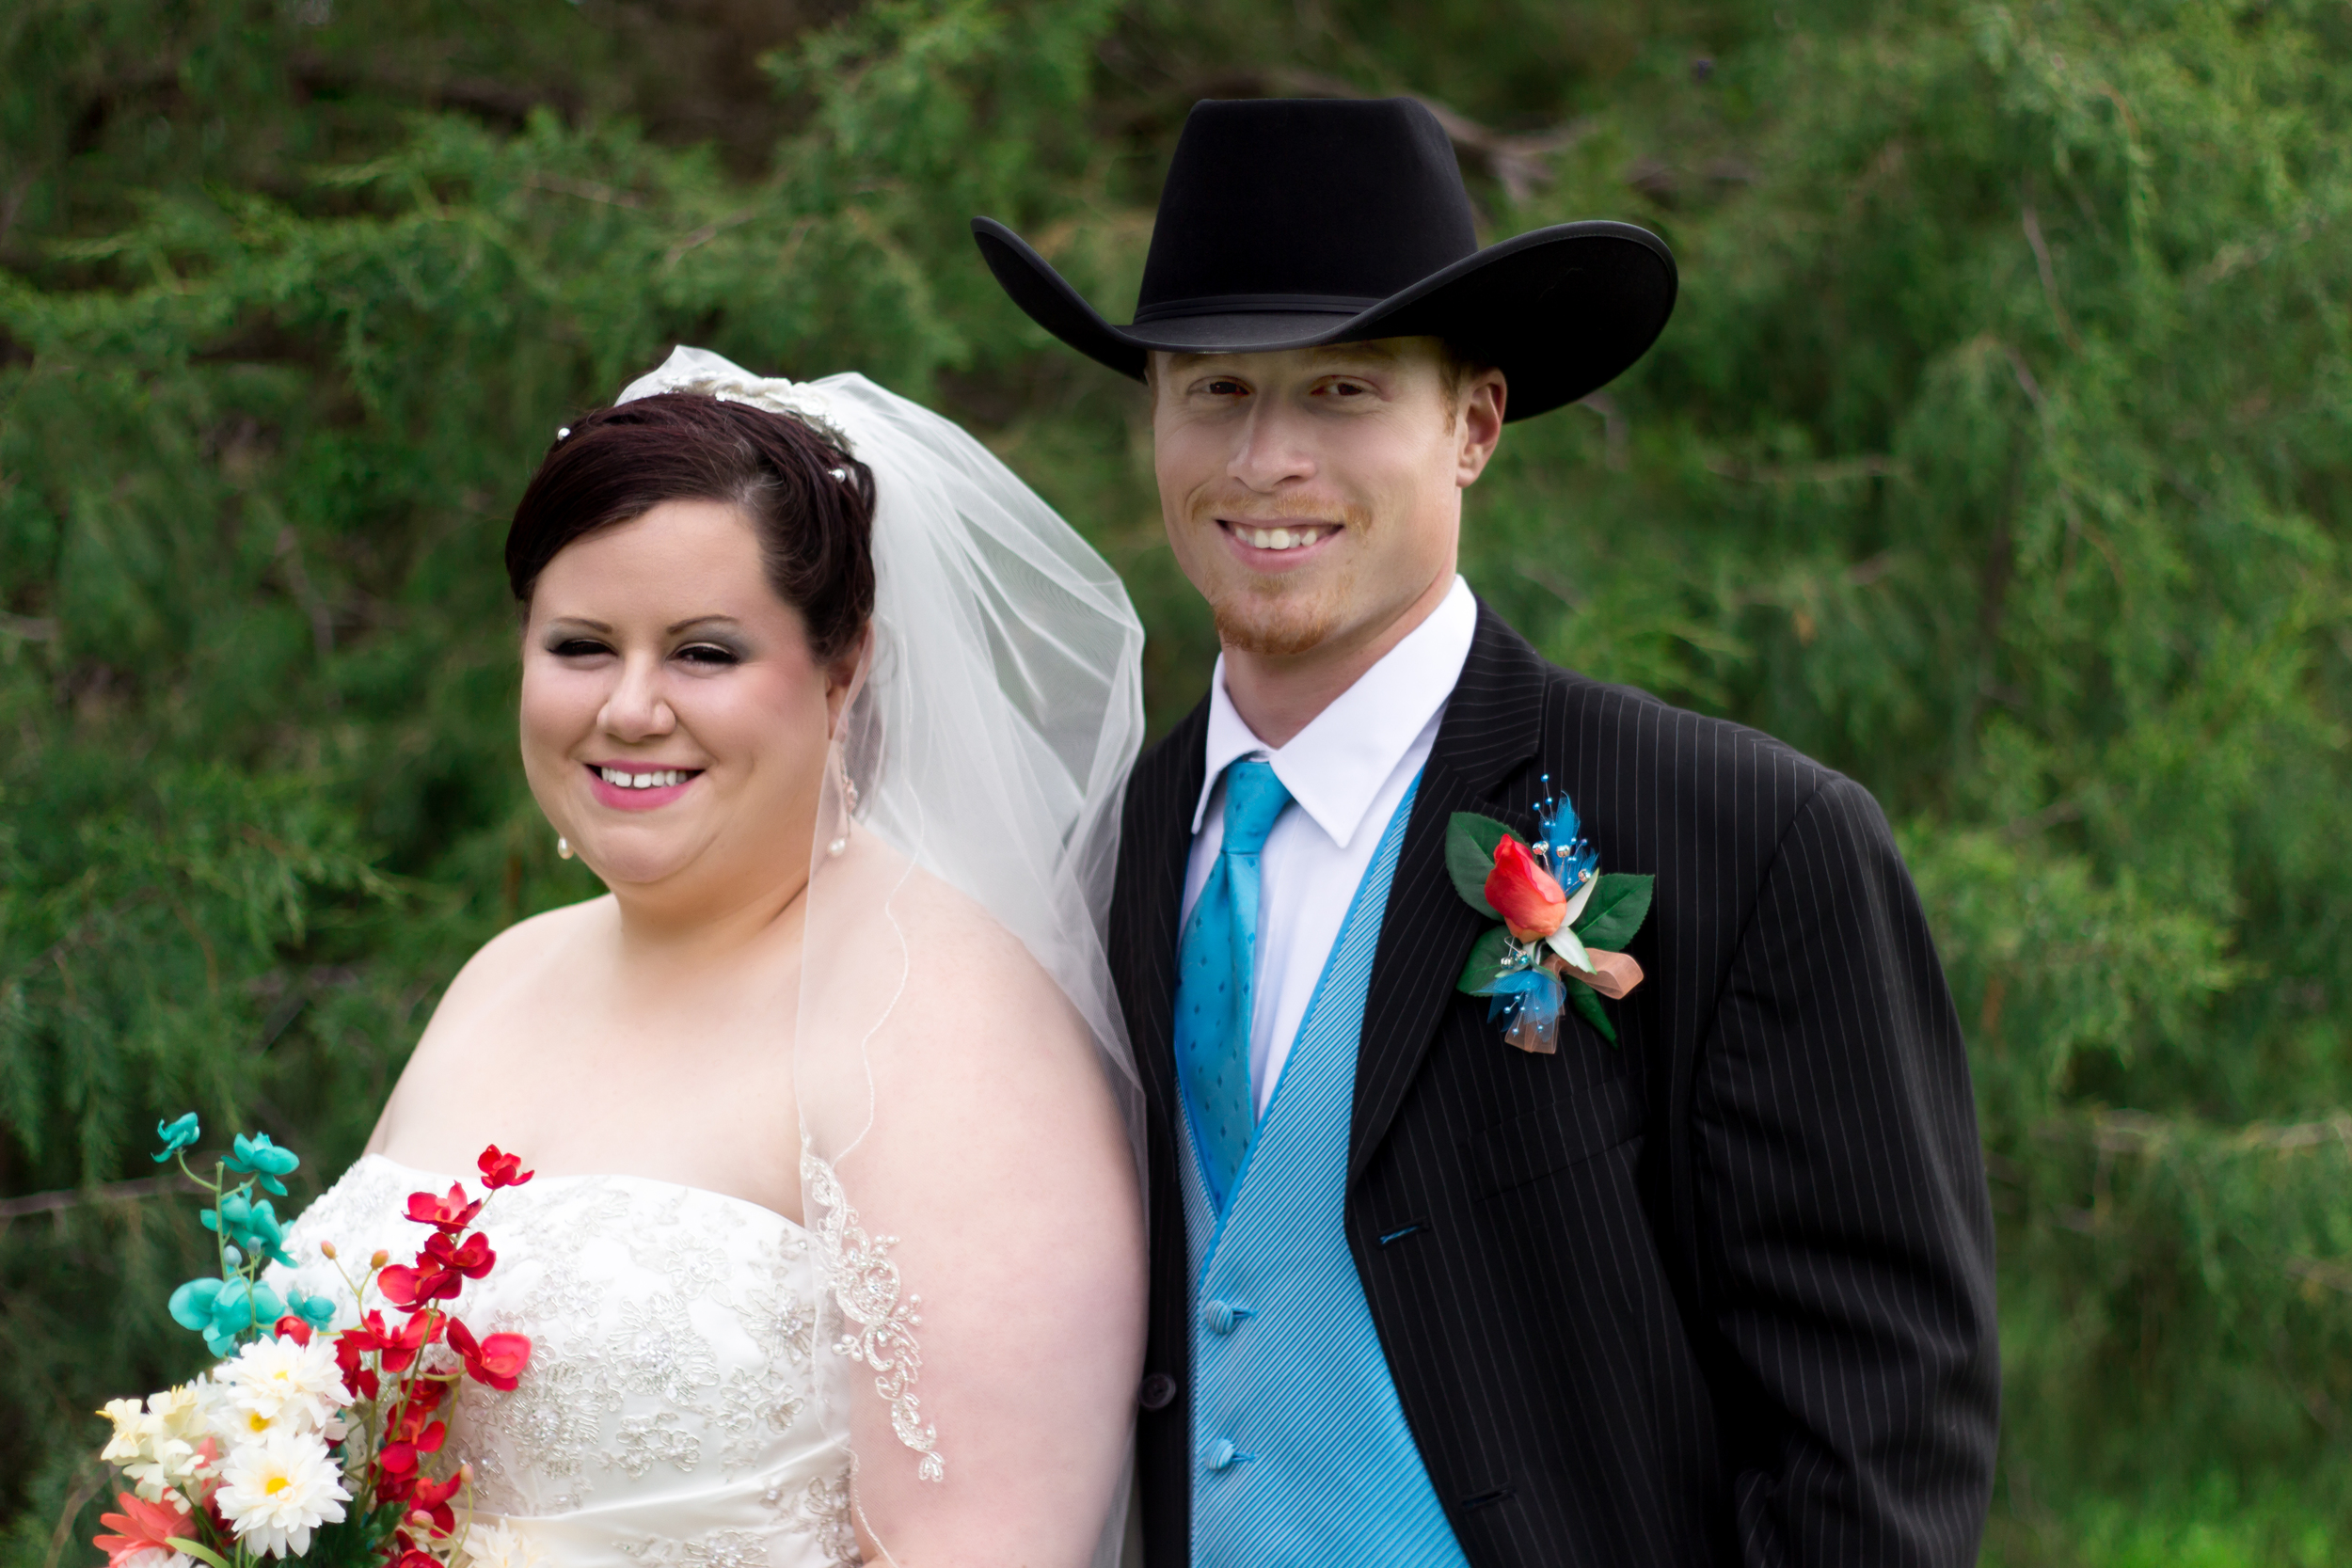 Mr. & Mrs. Kevin Wolfe - The Happy Couple